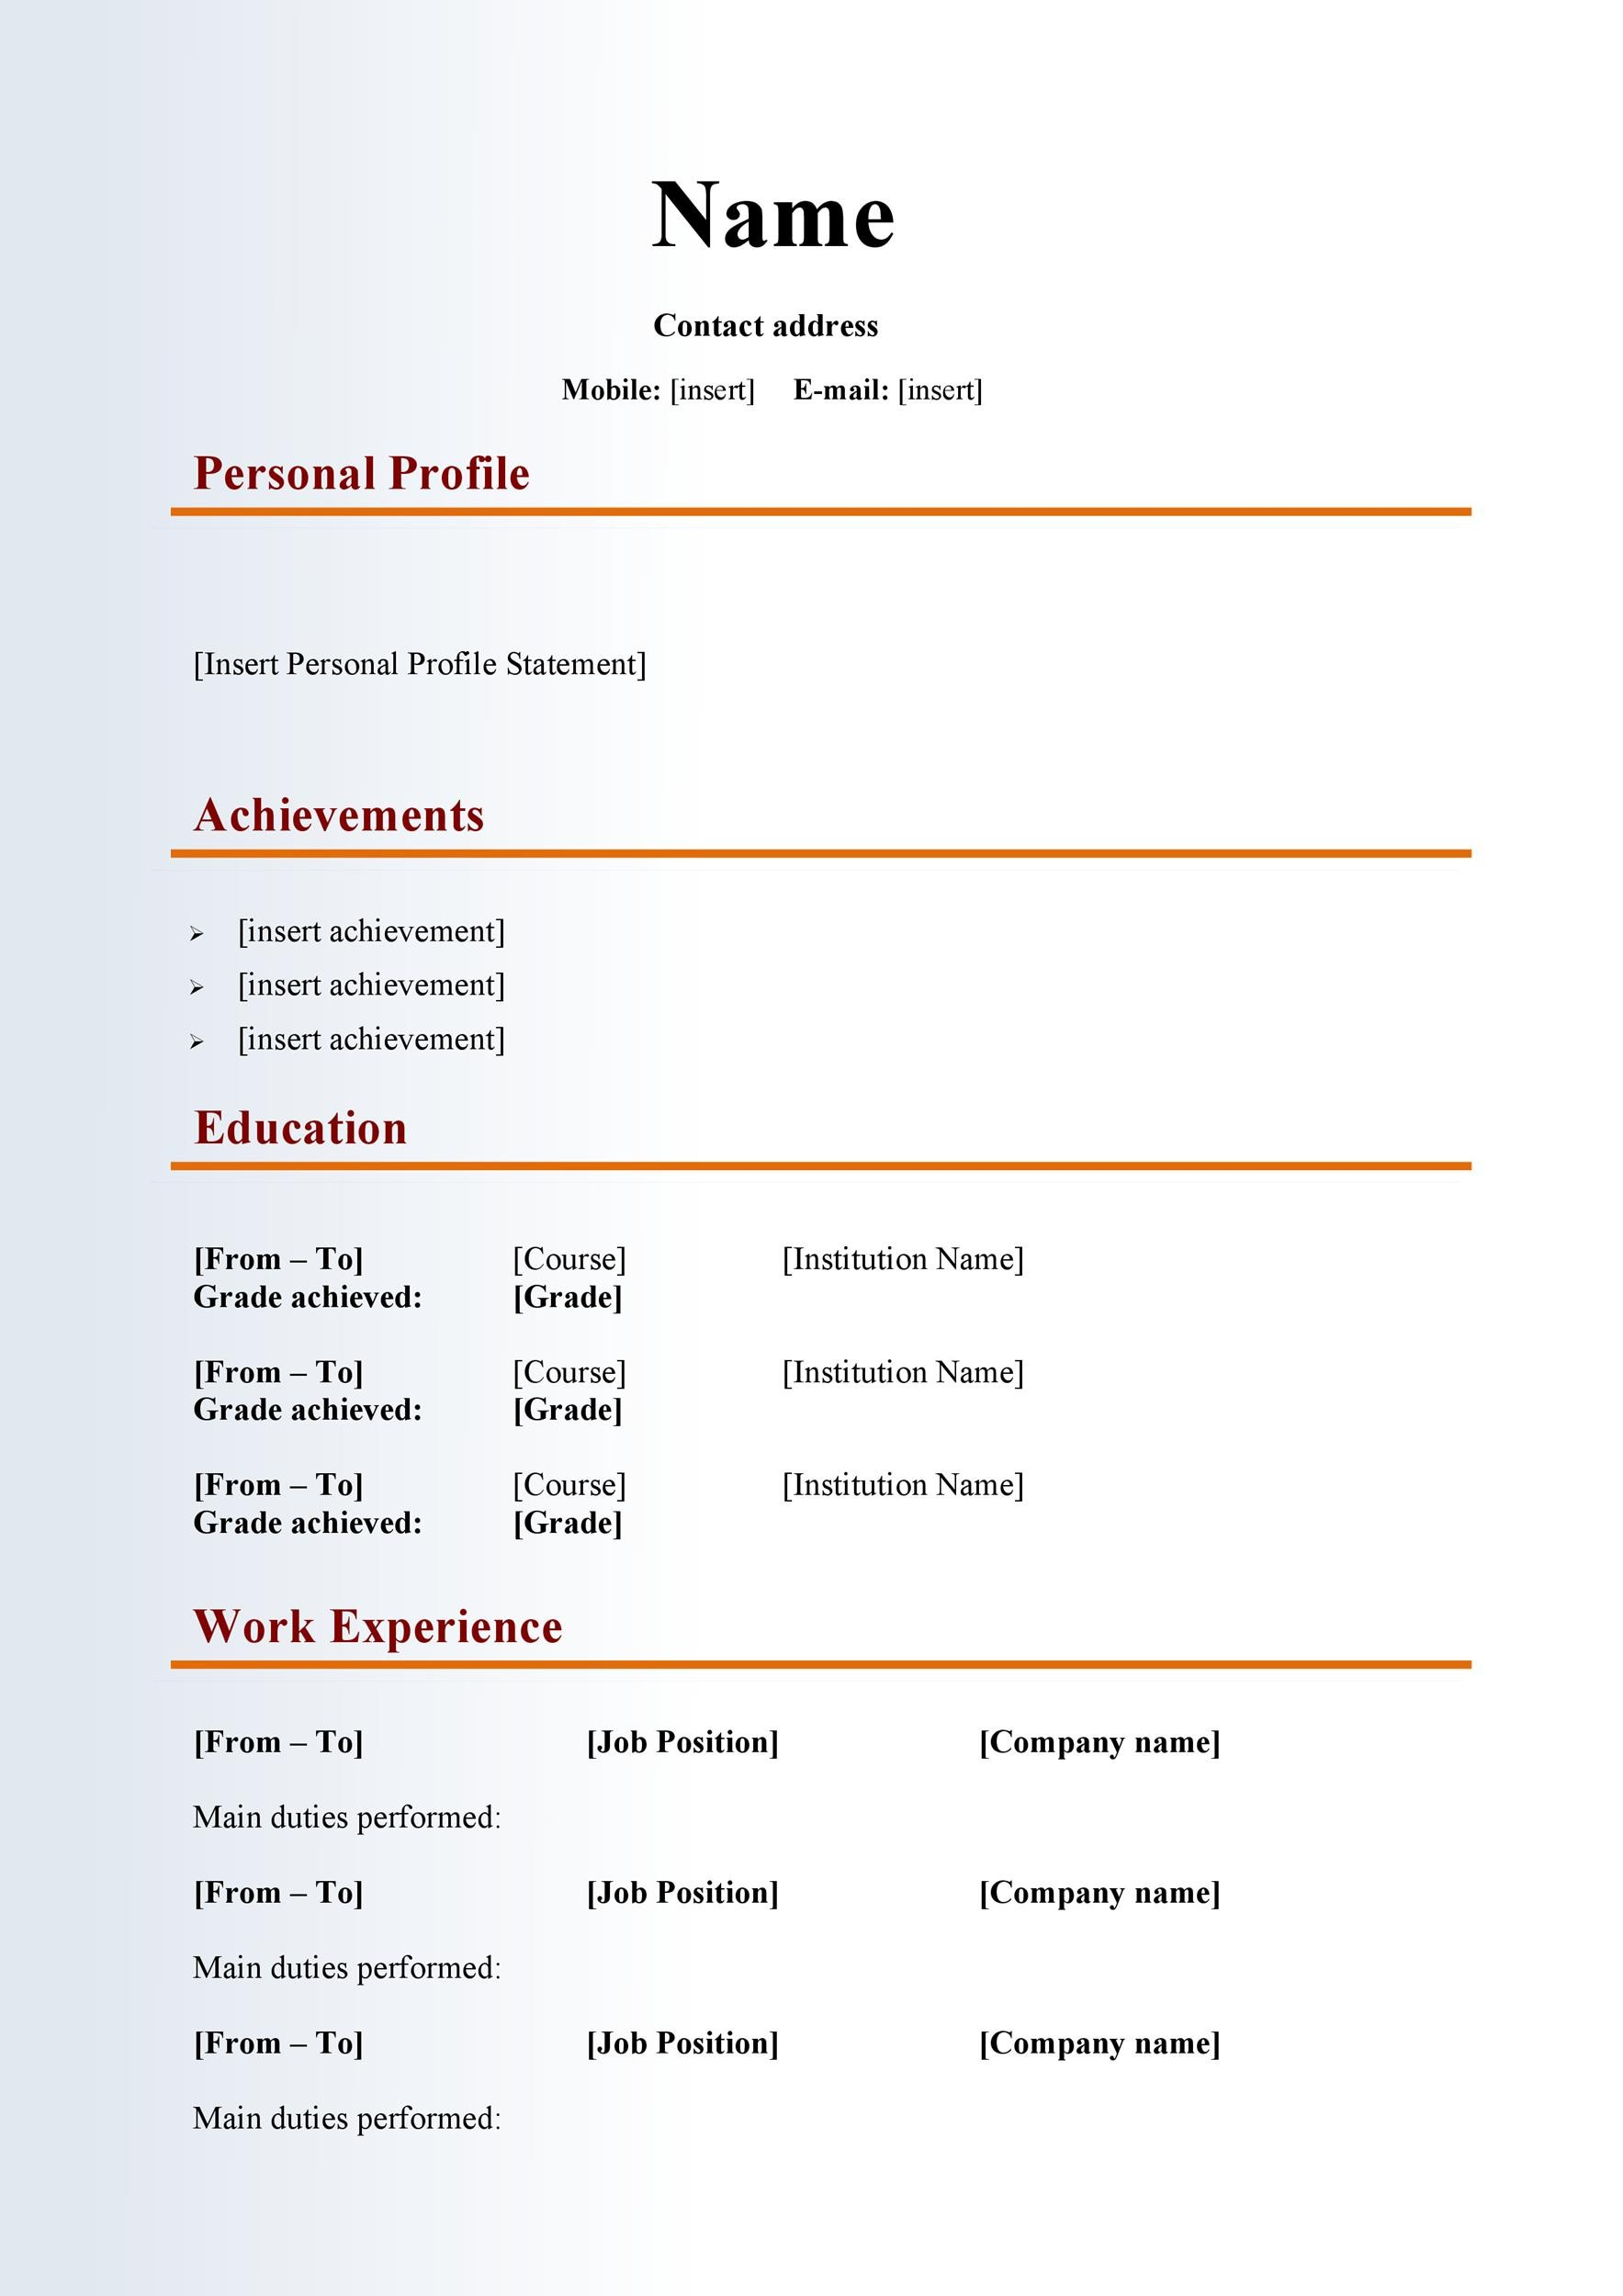 Samples Of Curriculum Vitae For Job Curriculum Vitae Cv Samples And Writing Tips The Balance 48 Great Curriculum Vitae Templates And Examples Template Lab